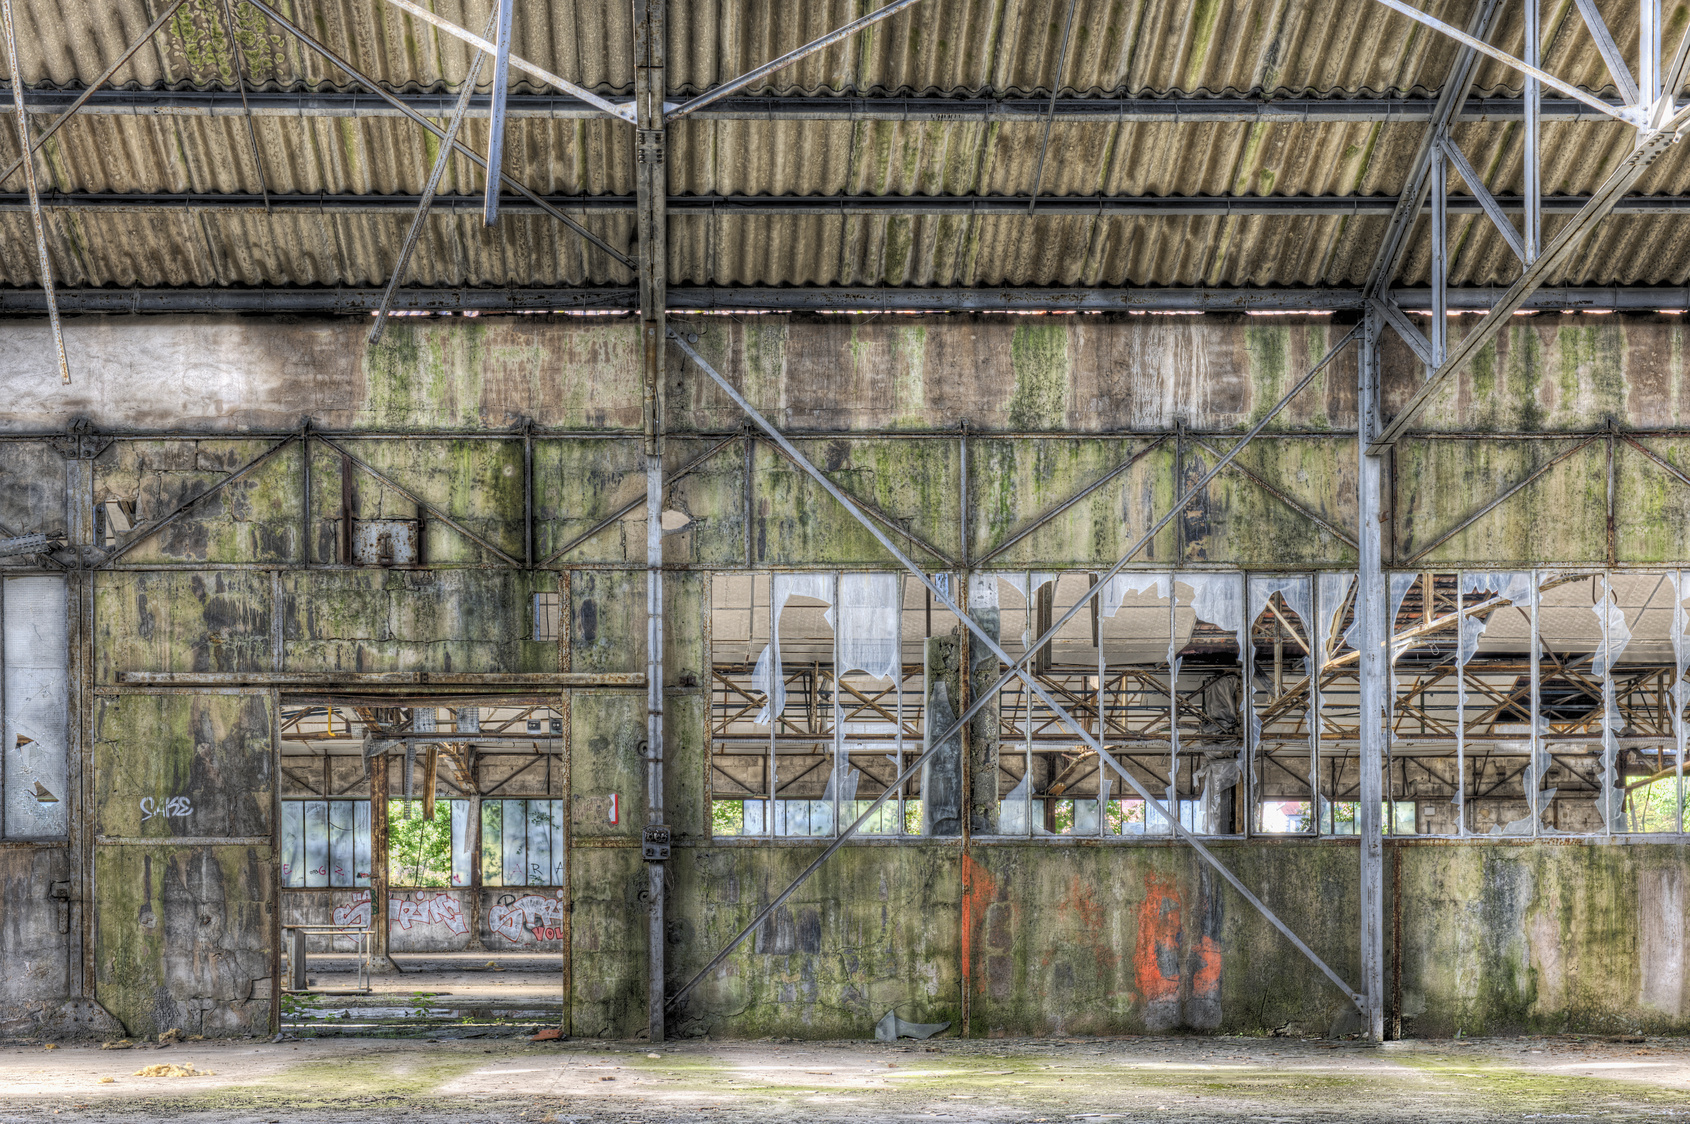 Derelict interior of dilapidated warehouse